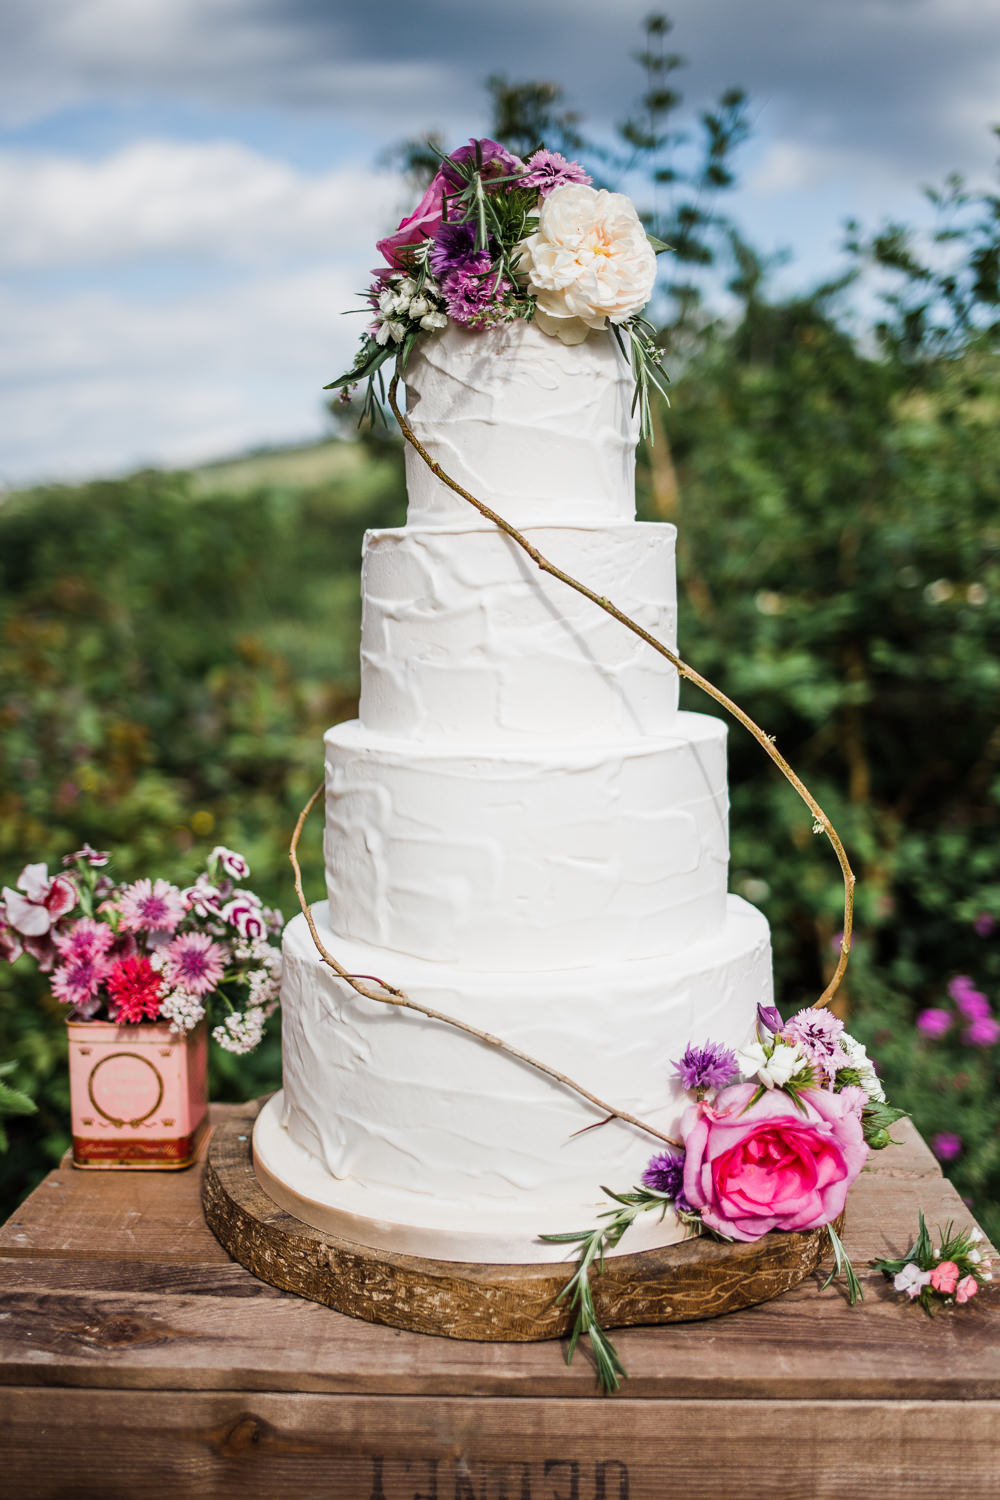 Buttercream Cake Rustic Flowers Colourful Bohemian Floral Wedding Ideas Anna Beth Photography